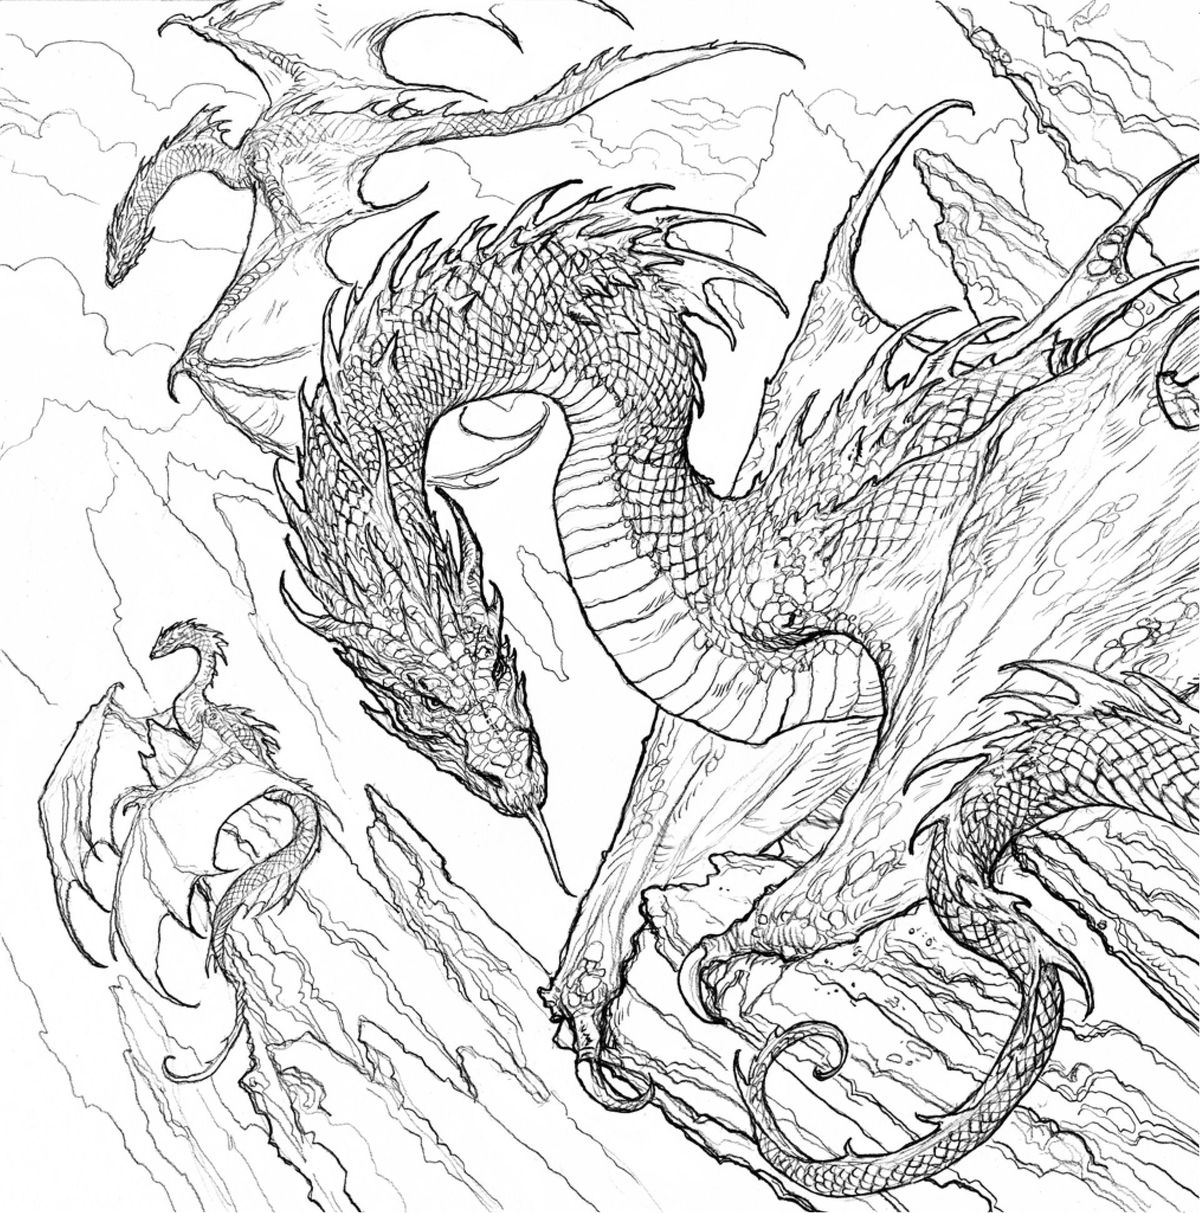 game of thrones coloring pages livre coloriage game of thrones imprimer et obtenir une pages thrones of game coloring